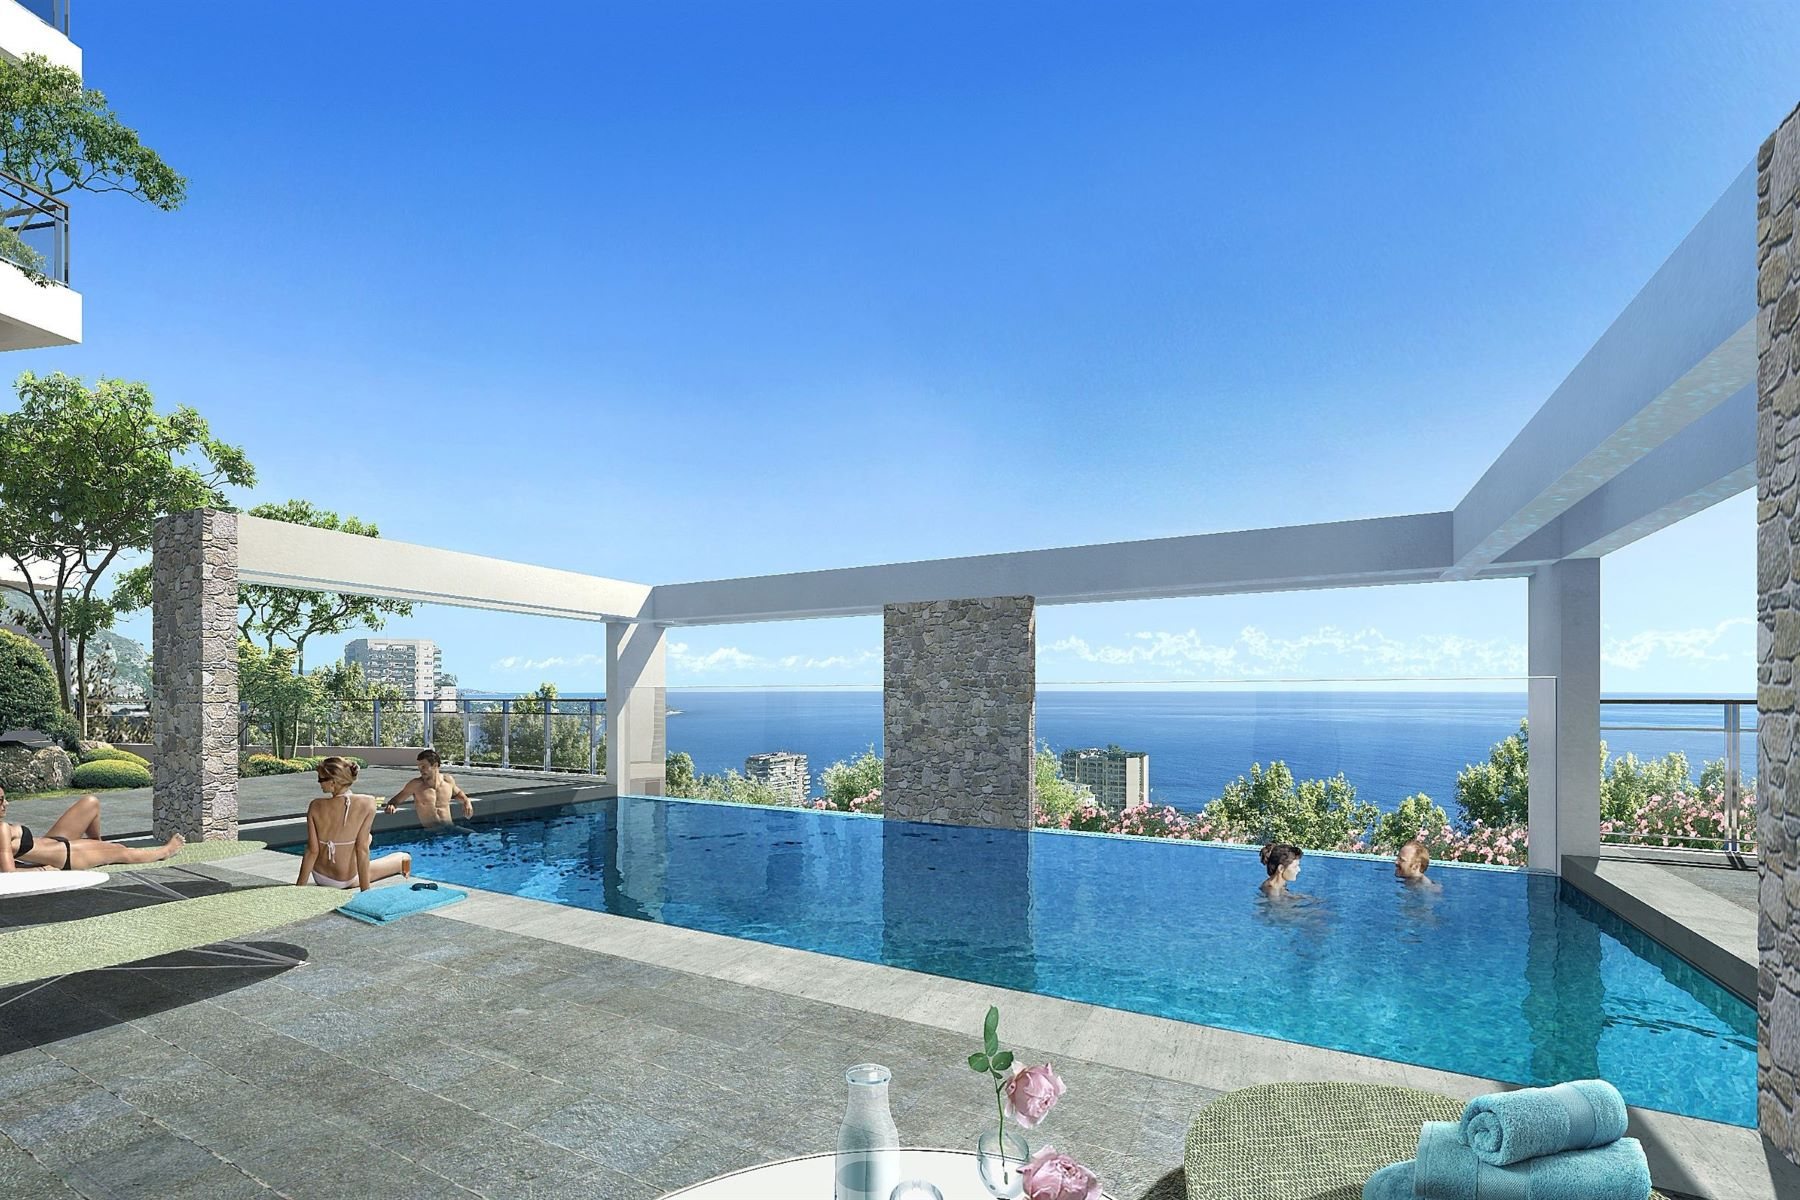 """Apartments for Sale at 2 bedroom apartment - """"Essenciel"""" -New residence- sea view Beausoleil, Provence-Alpes-Cote D'Azur 06240 France"""